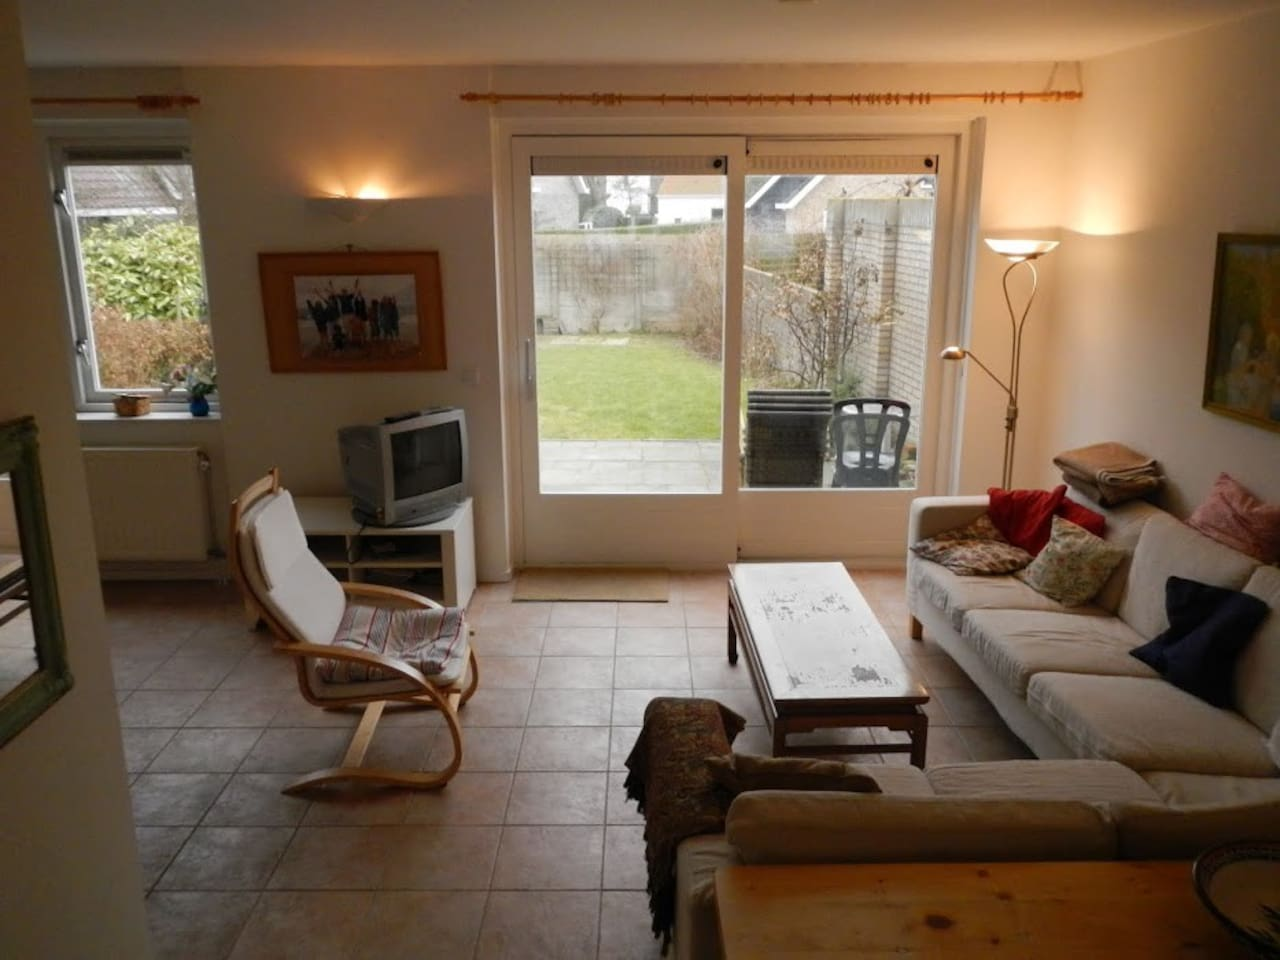 Cosy vacation house near the beach - Huizen te Huur in Domburg